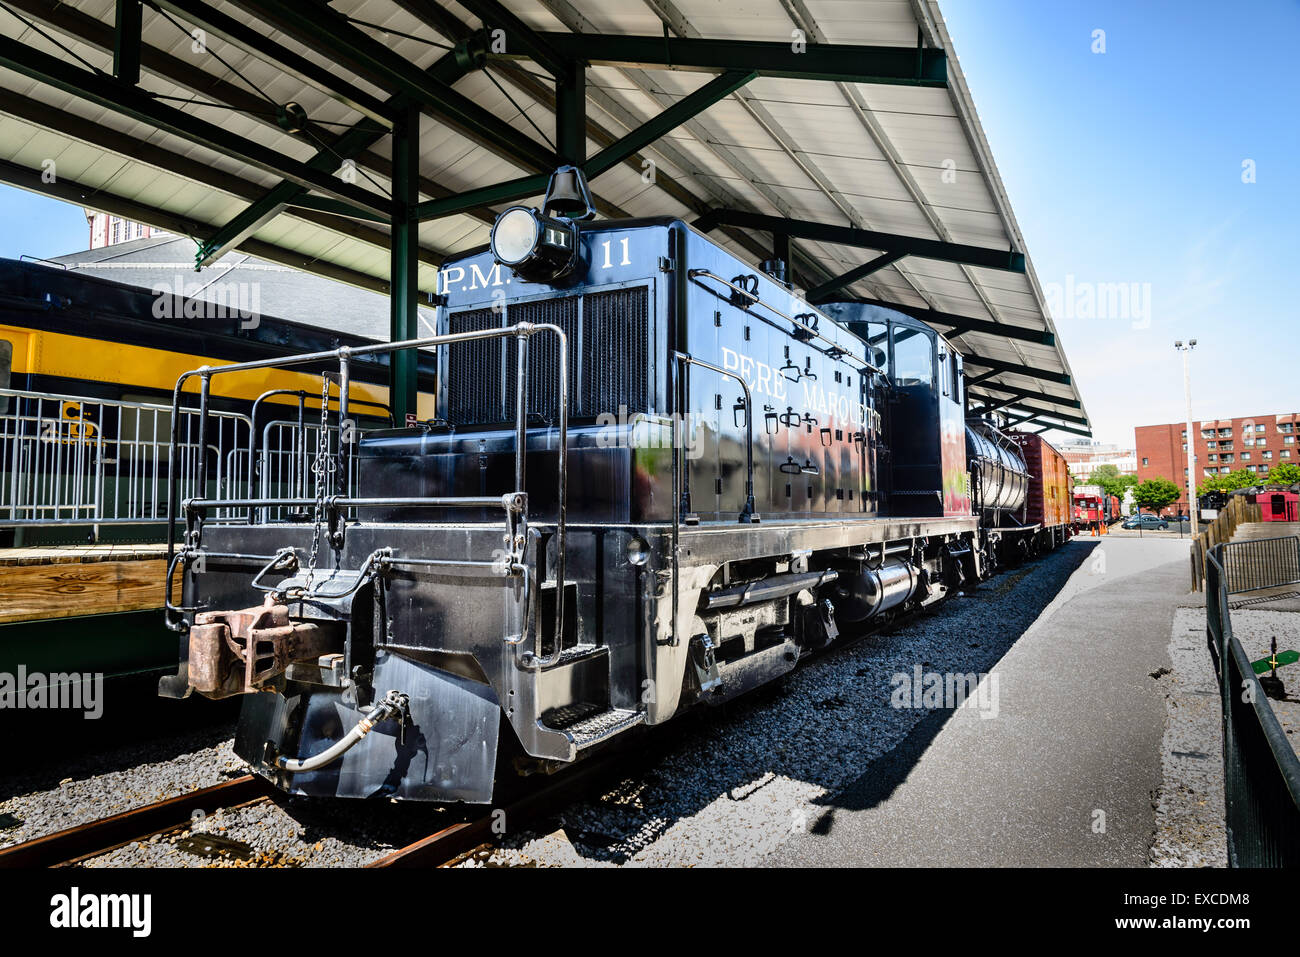 Pere Marquette Railway SW-1 Locomotive No 11, Baltimore & Ohio Railroad Museum, 901 West Pratt Street, Baltimore, - Stock Image